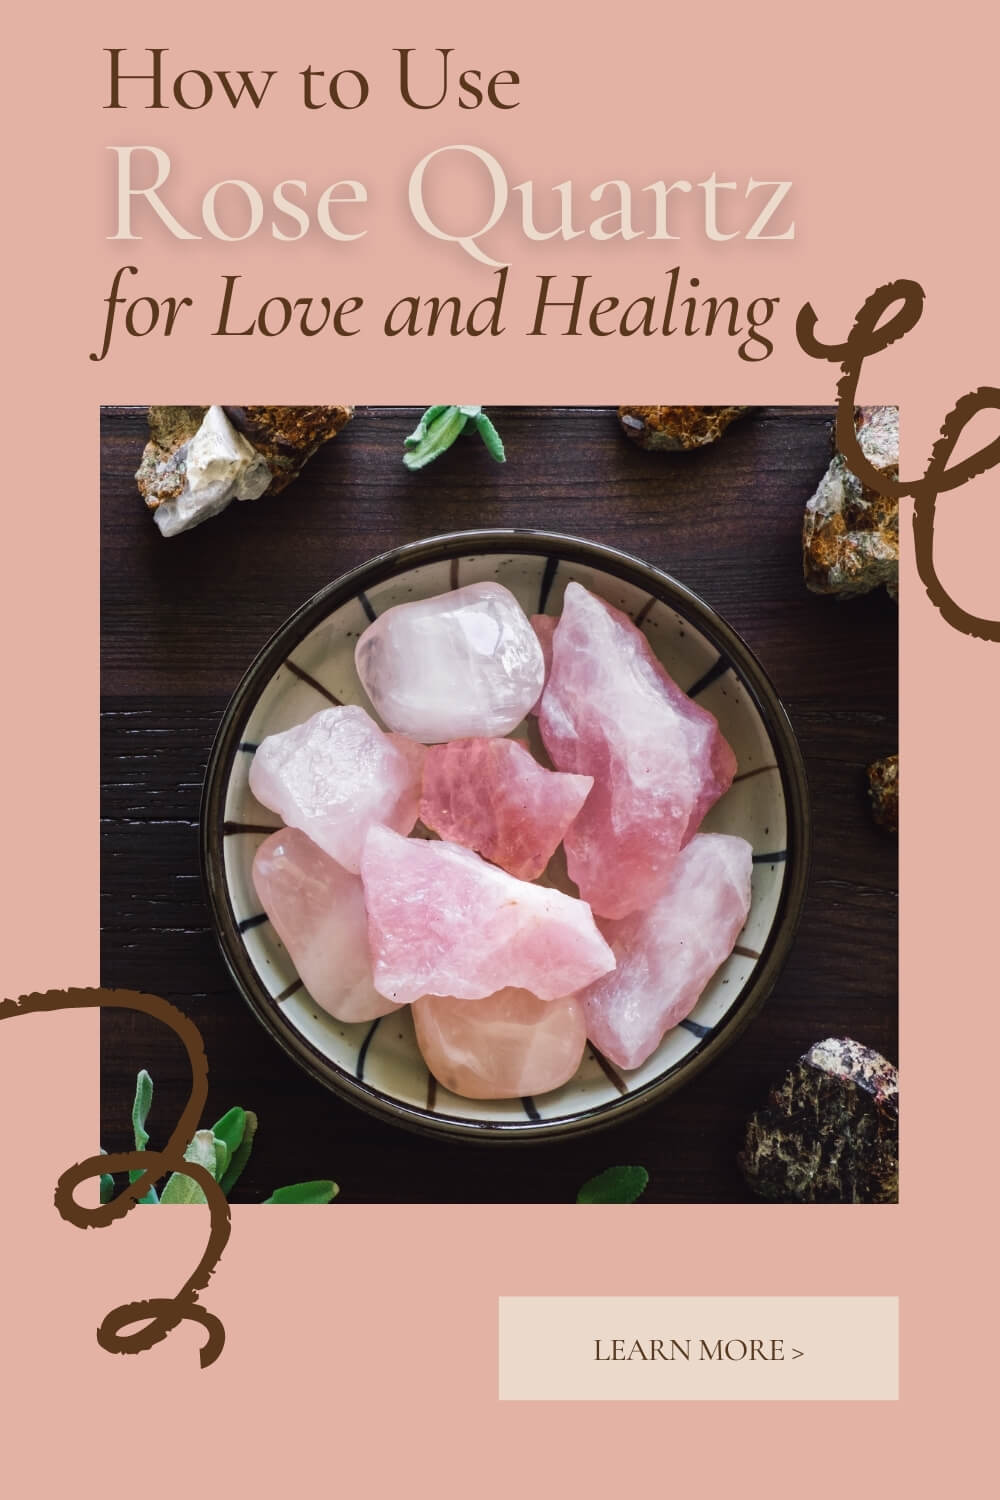 Rose Quartz healing properties by Loving Essential Oils